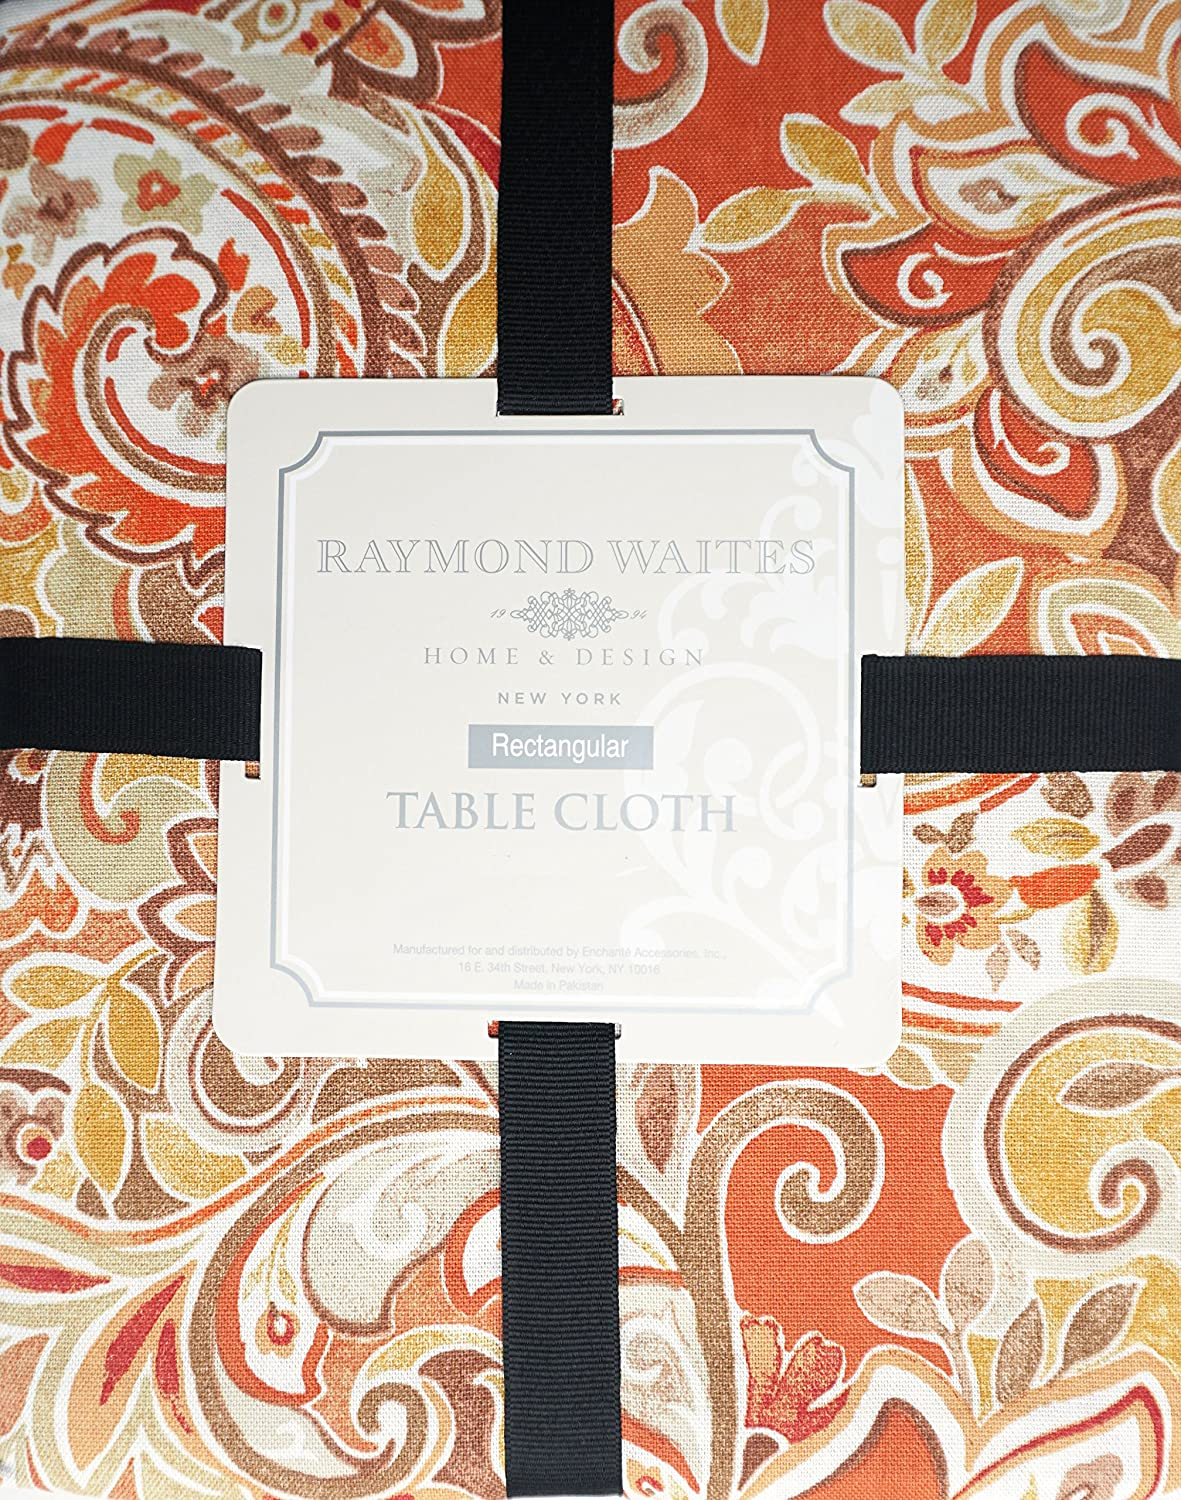 Amazon.com: Raymond Waites Fabric Tablecloth Floral Pattern In Shades Of  Brown Orange Cream 60 Inches By 84 Inches: Home U0026 Kitchen